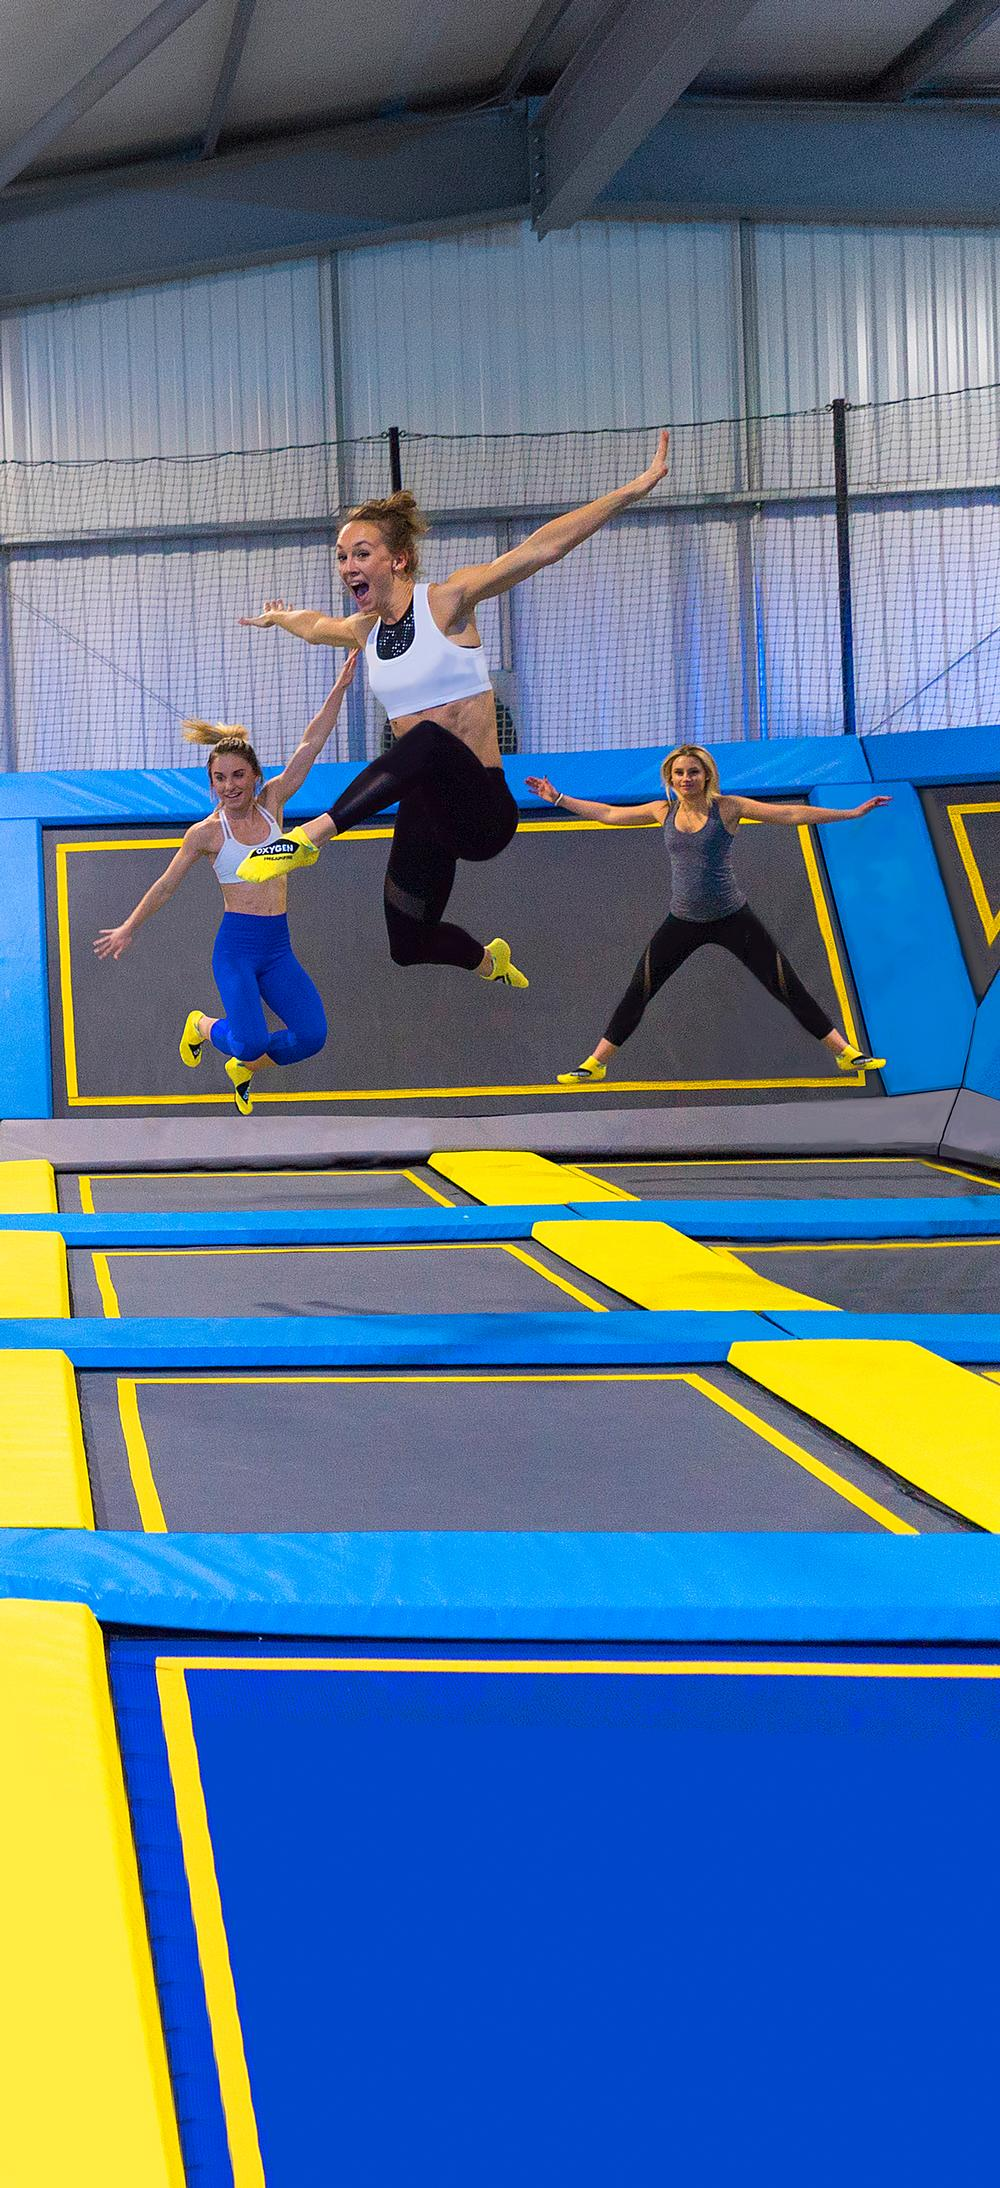 Oxygen Freejumping centres are between 25,000 and 35,000 sq ft, with wall-to-wall trampolines